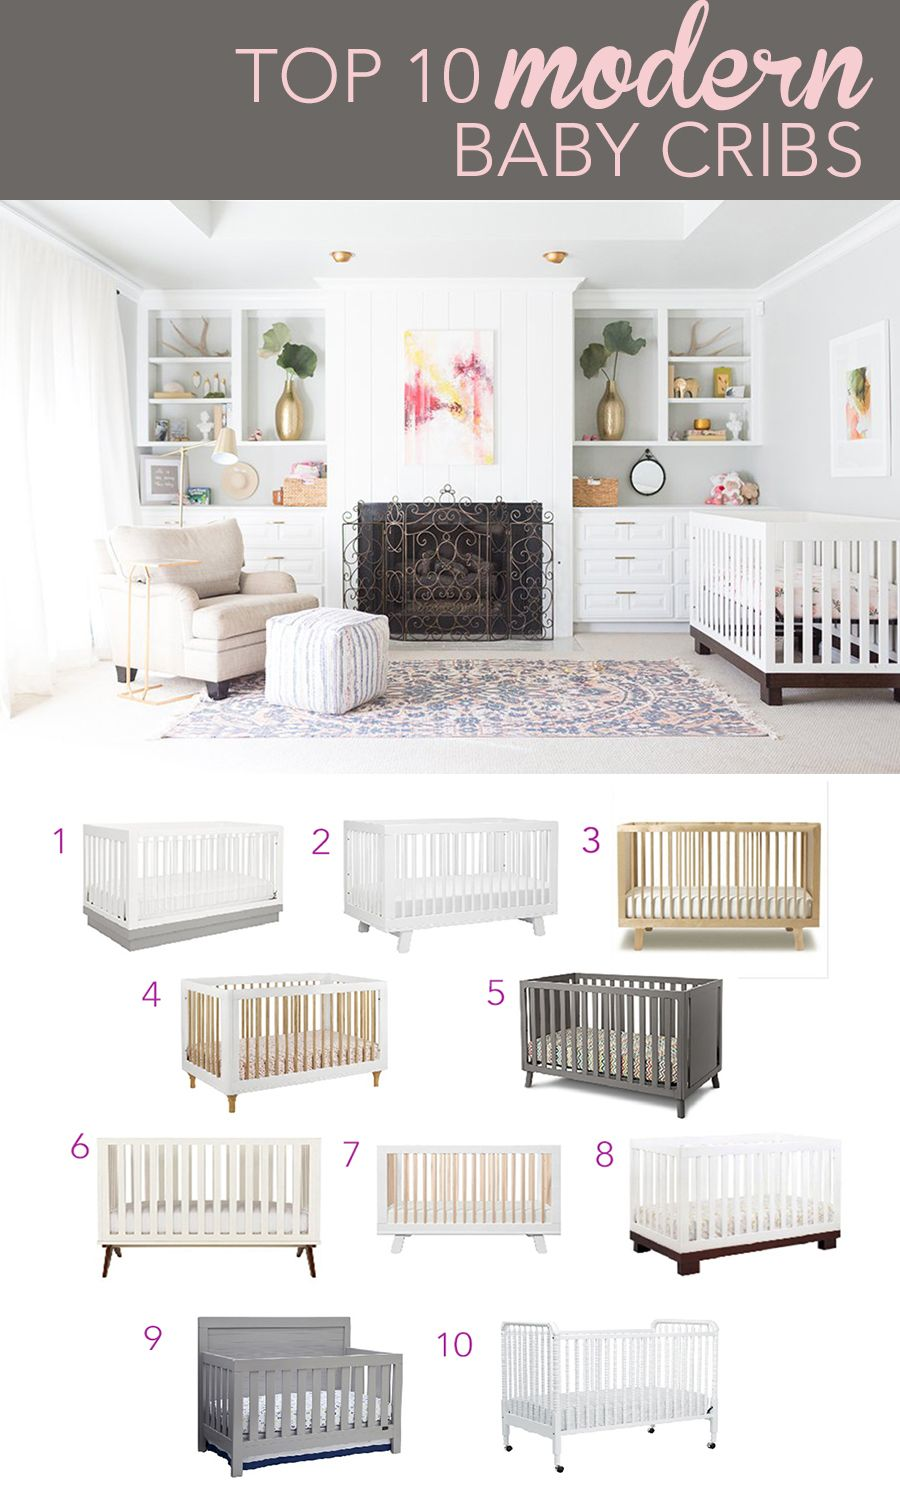 Top 10 Modern Baby Cribs Cc And Mike Lifestyle And Design Blog Modern Baby Cribs Best Baby Cribs Baby Crib Designs